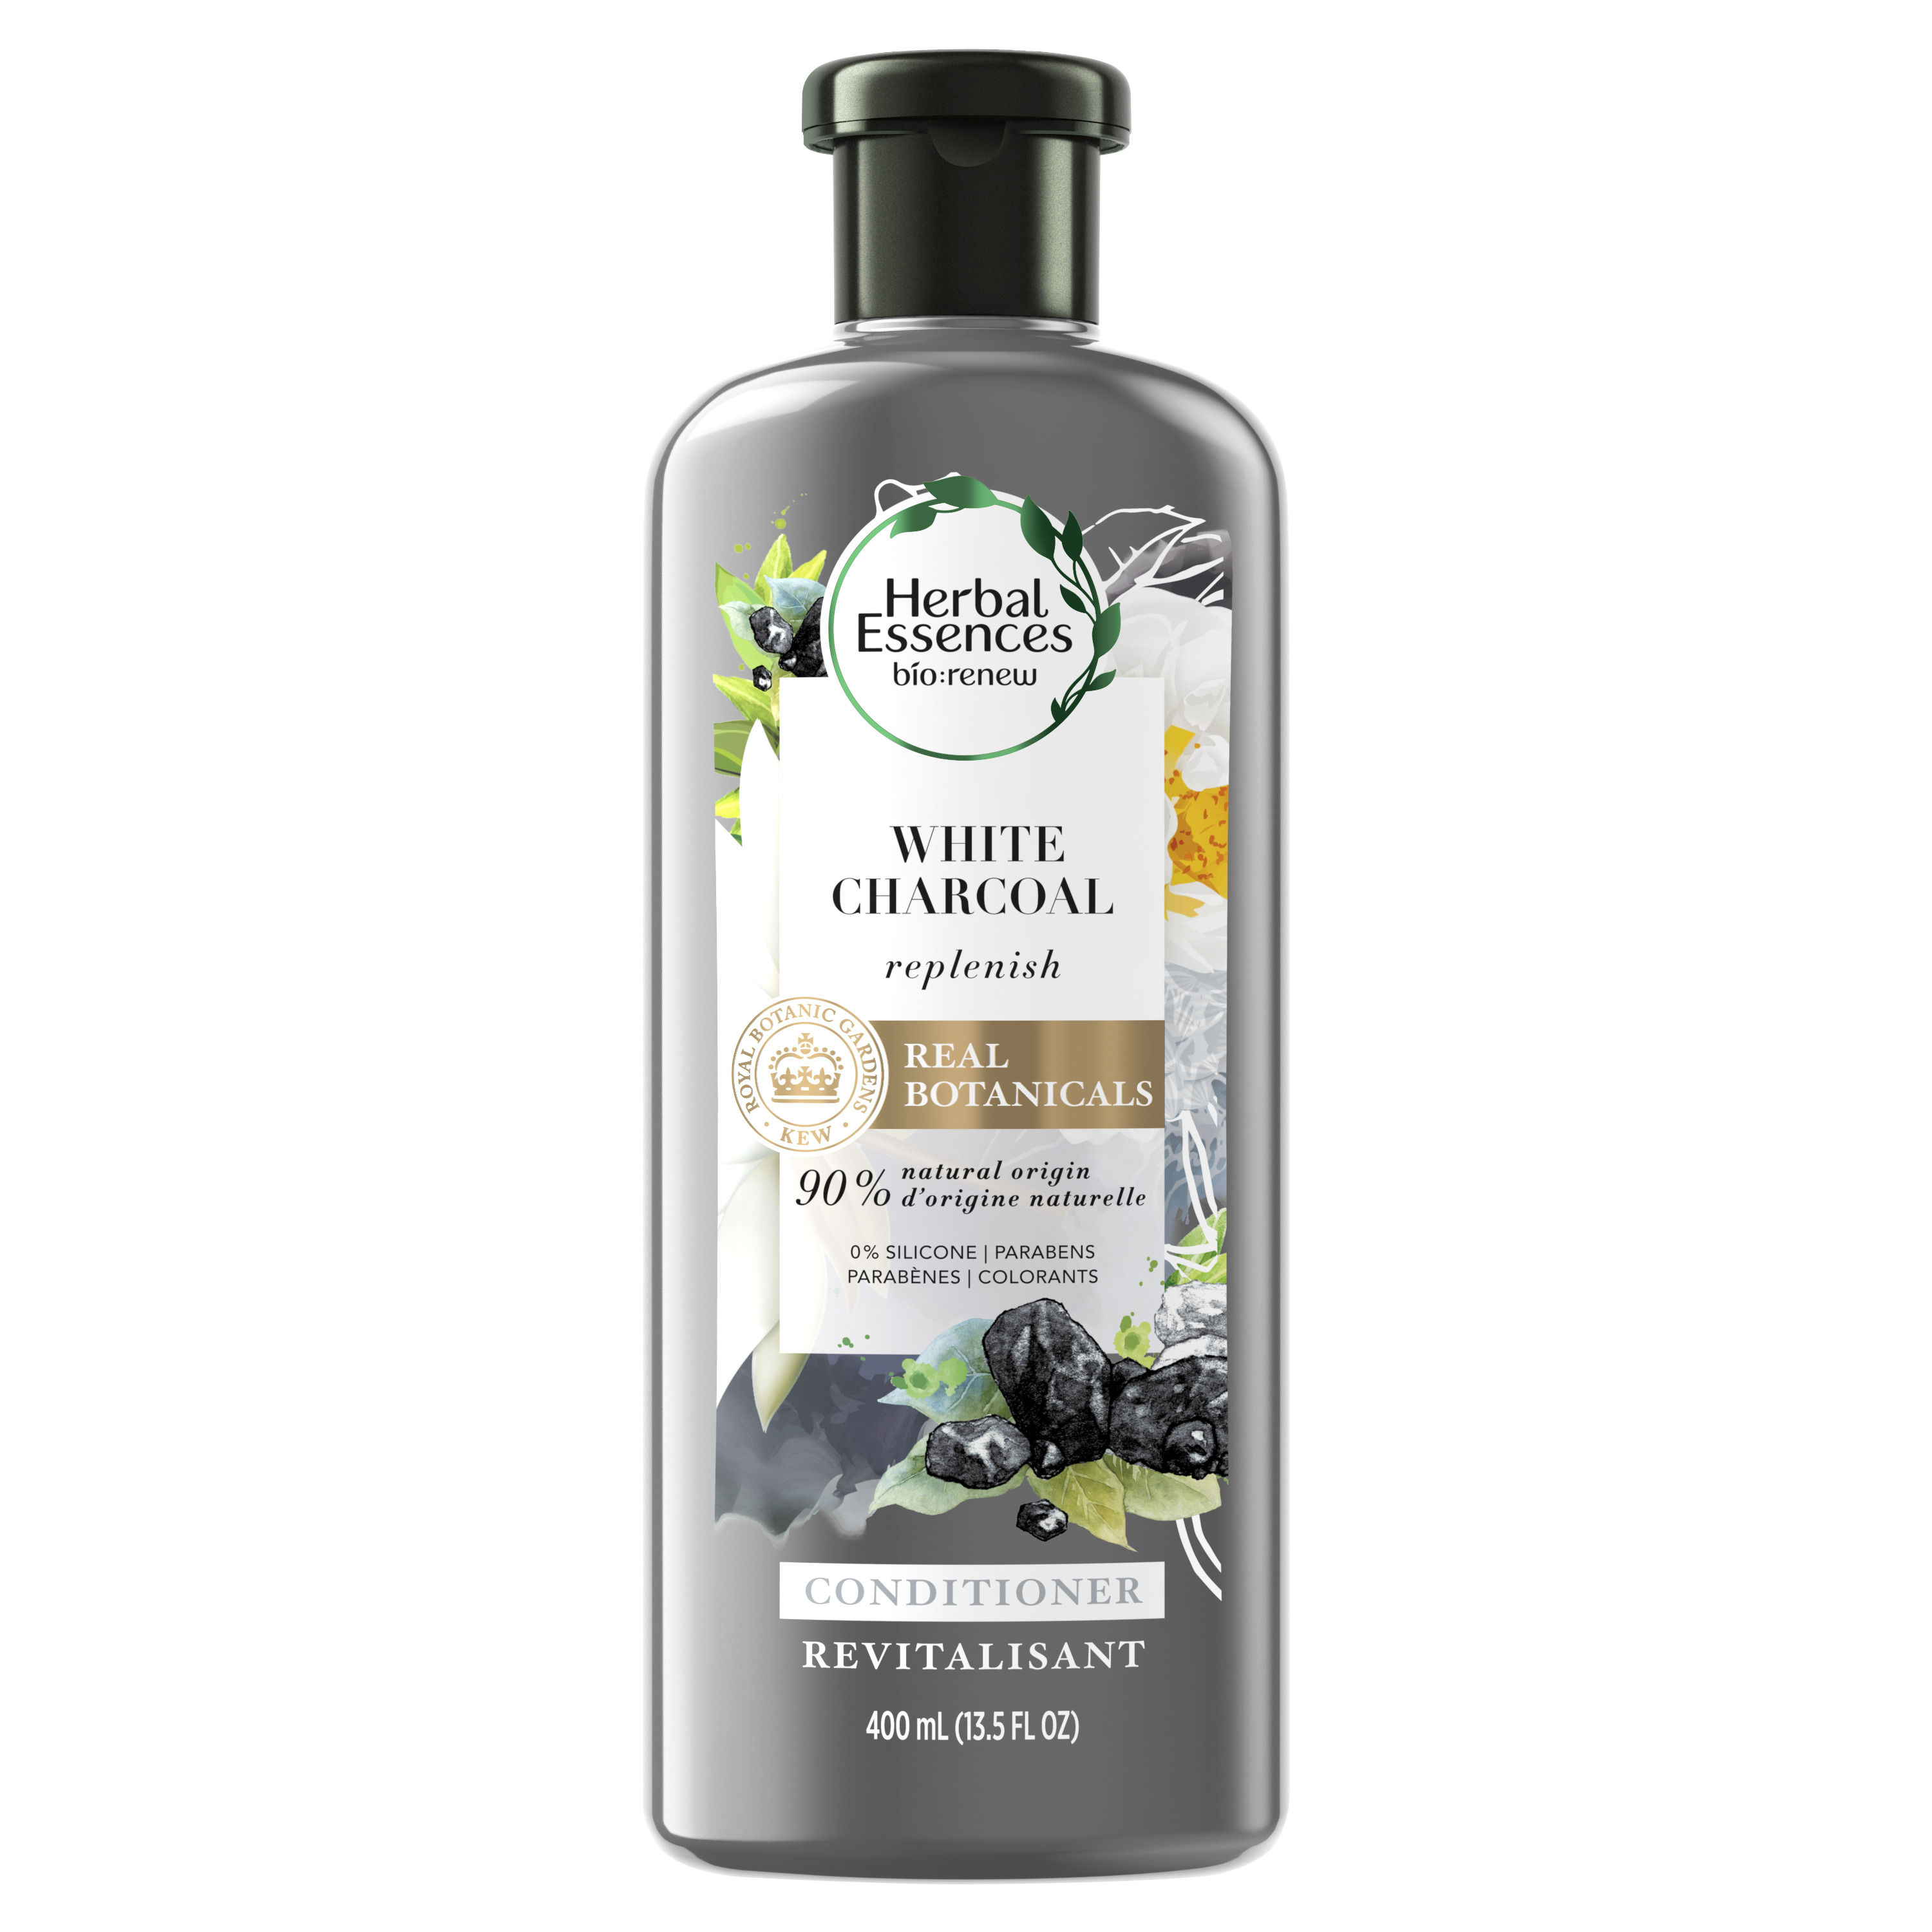 Herbal Essences Detox & Replenish Charcoal Collection. Suministrada)